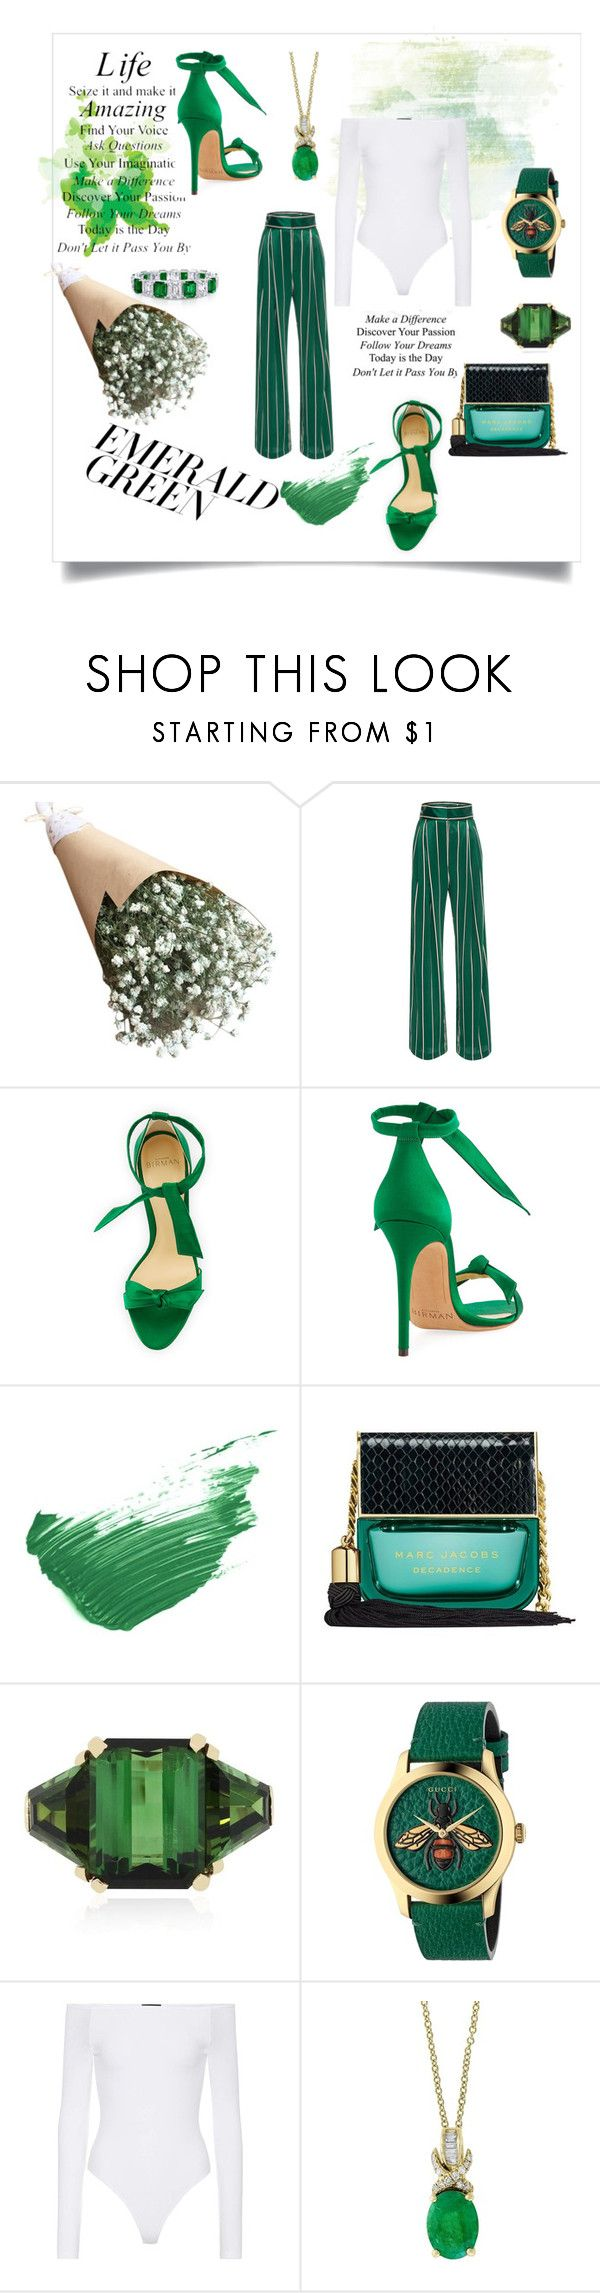 """Untitled #107"" by annakorf-i ❤ liked on Polyvore featuring WALL, Alexandre Birman, By Terry, Marc Jacobs, Gucci, ATM by Anthony Thomas Melillo and Effy Jewelry"